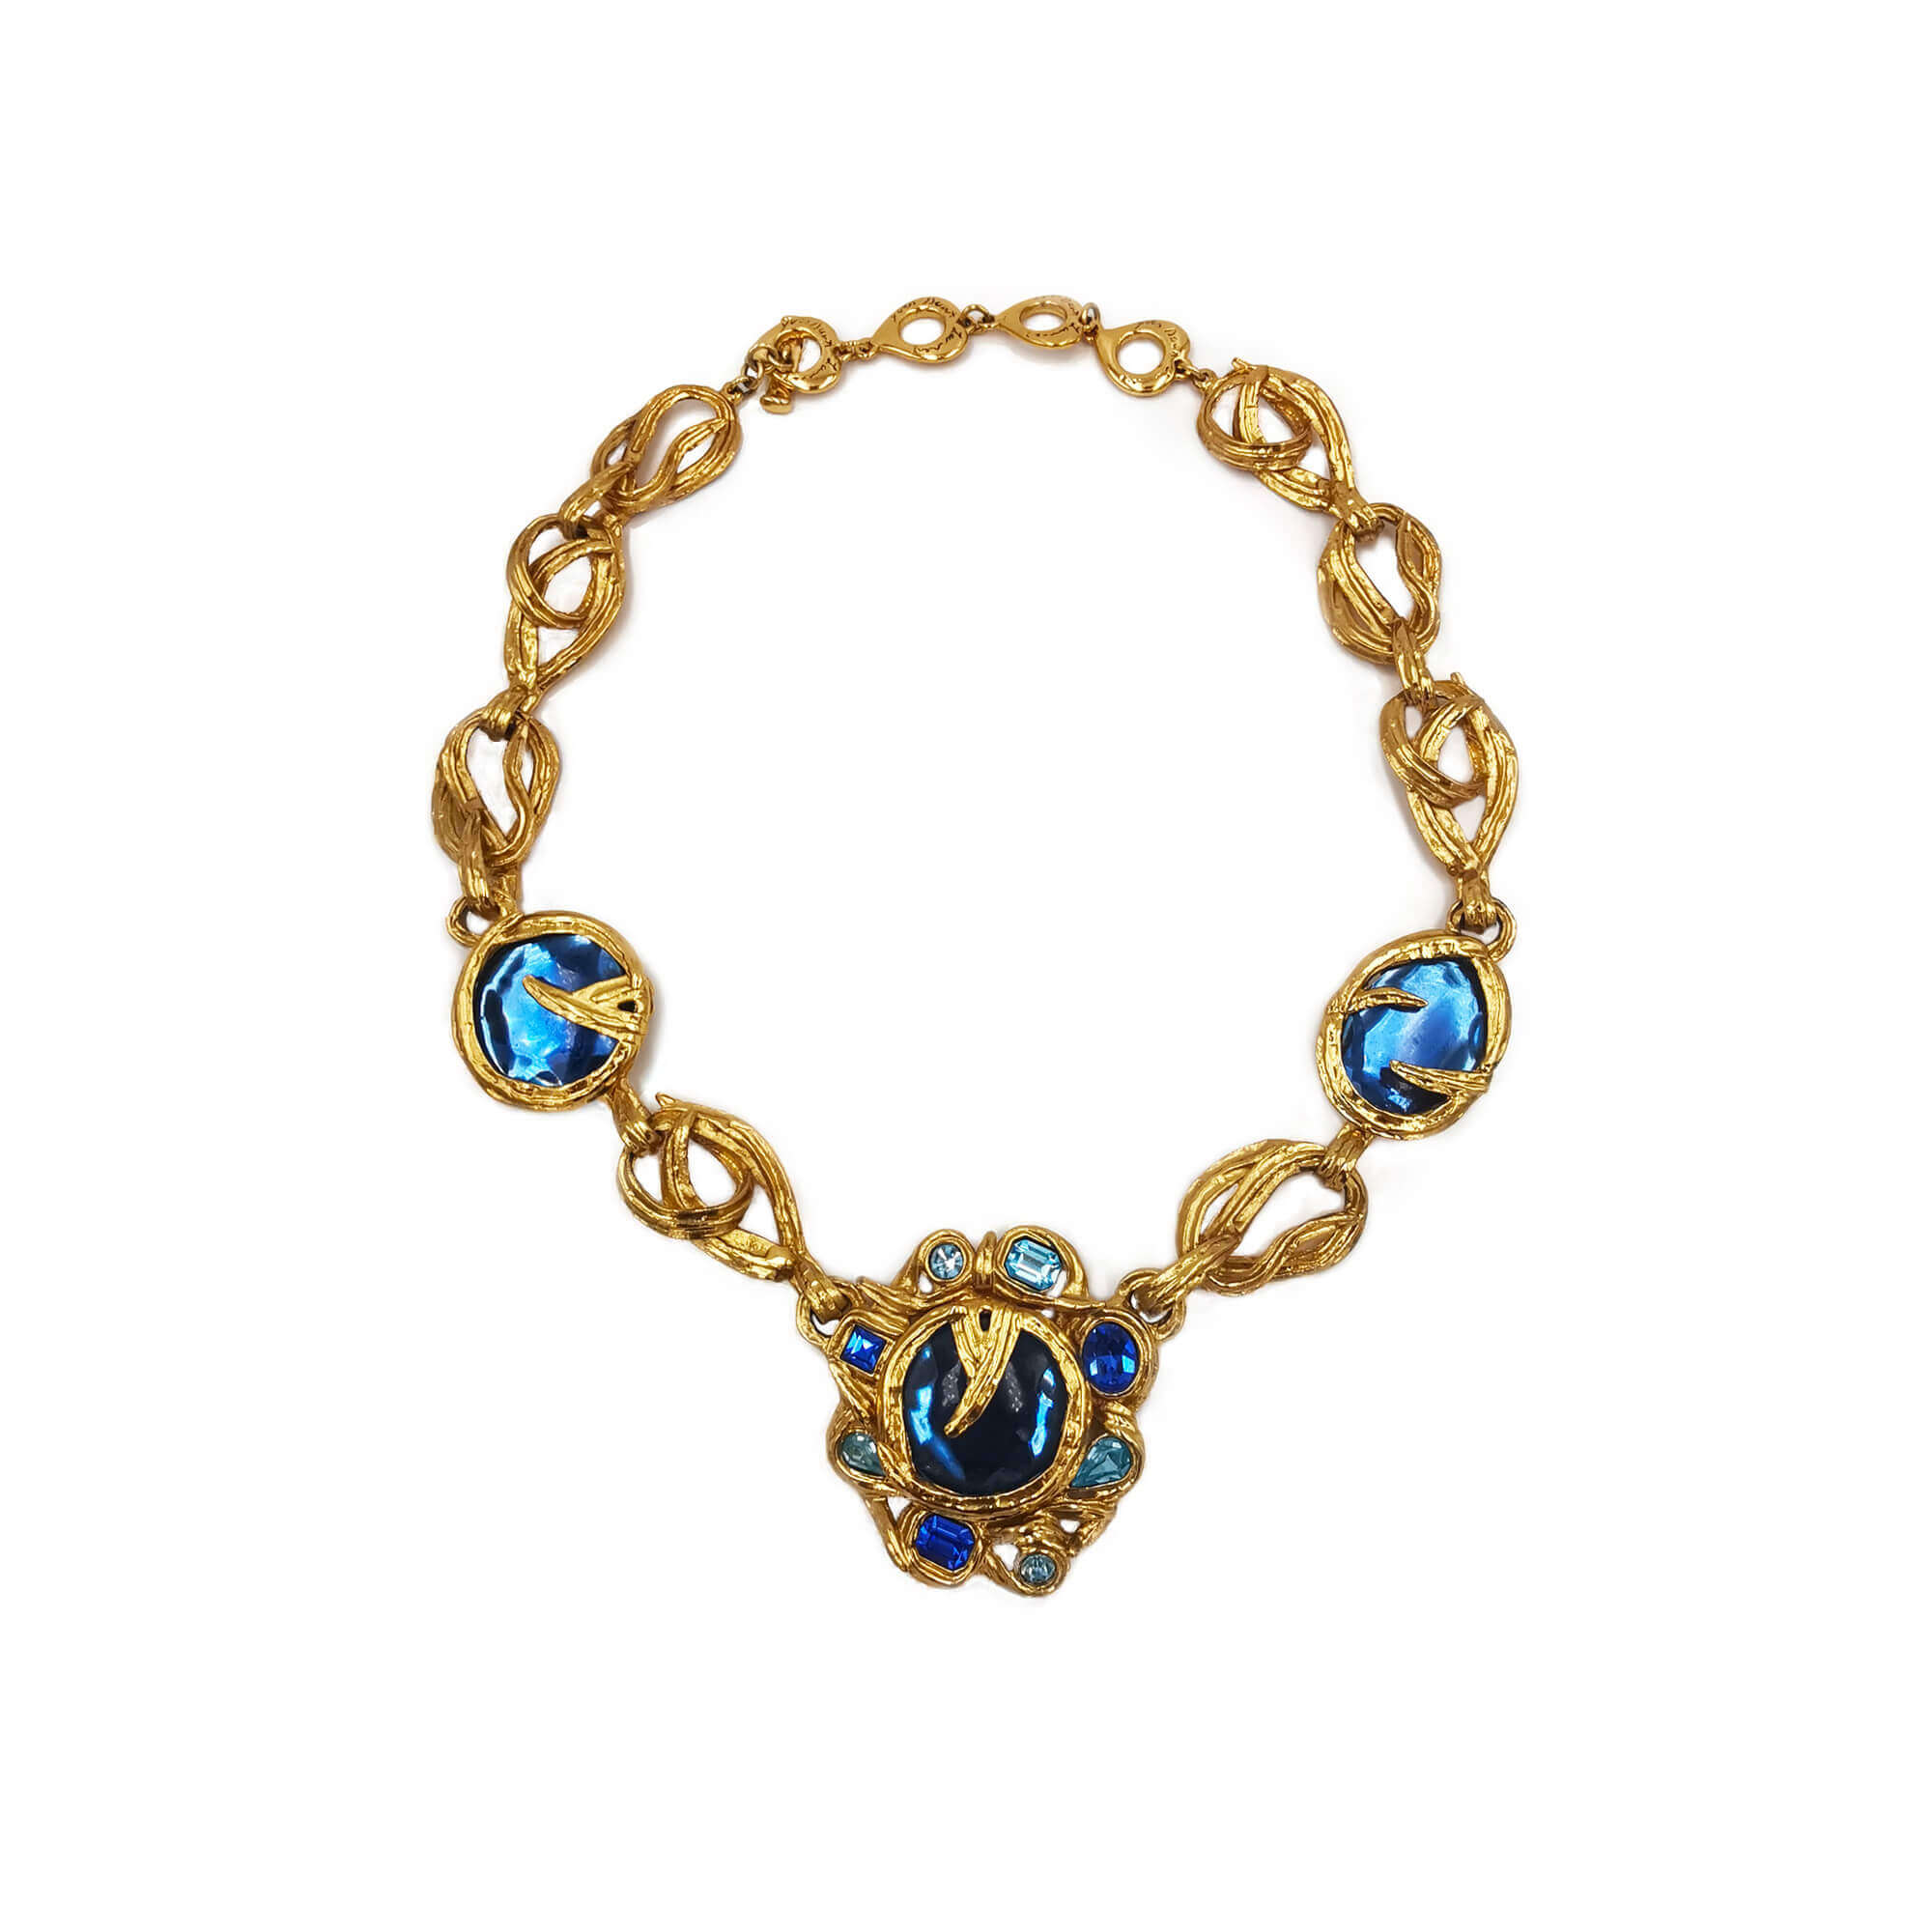 Necklace  Goossens for Yves Saint Laurent - Bona Tondinelli Bijoux